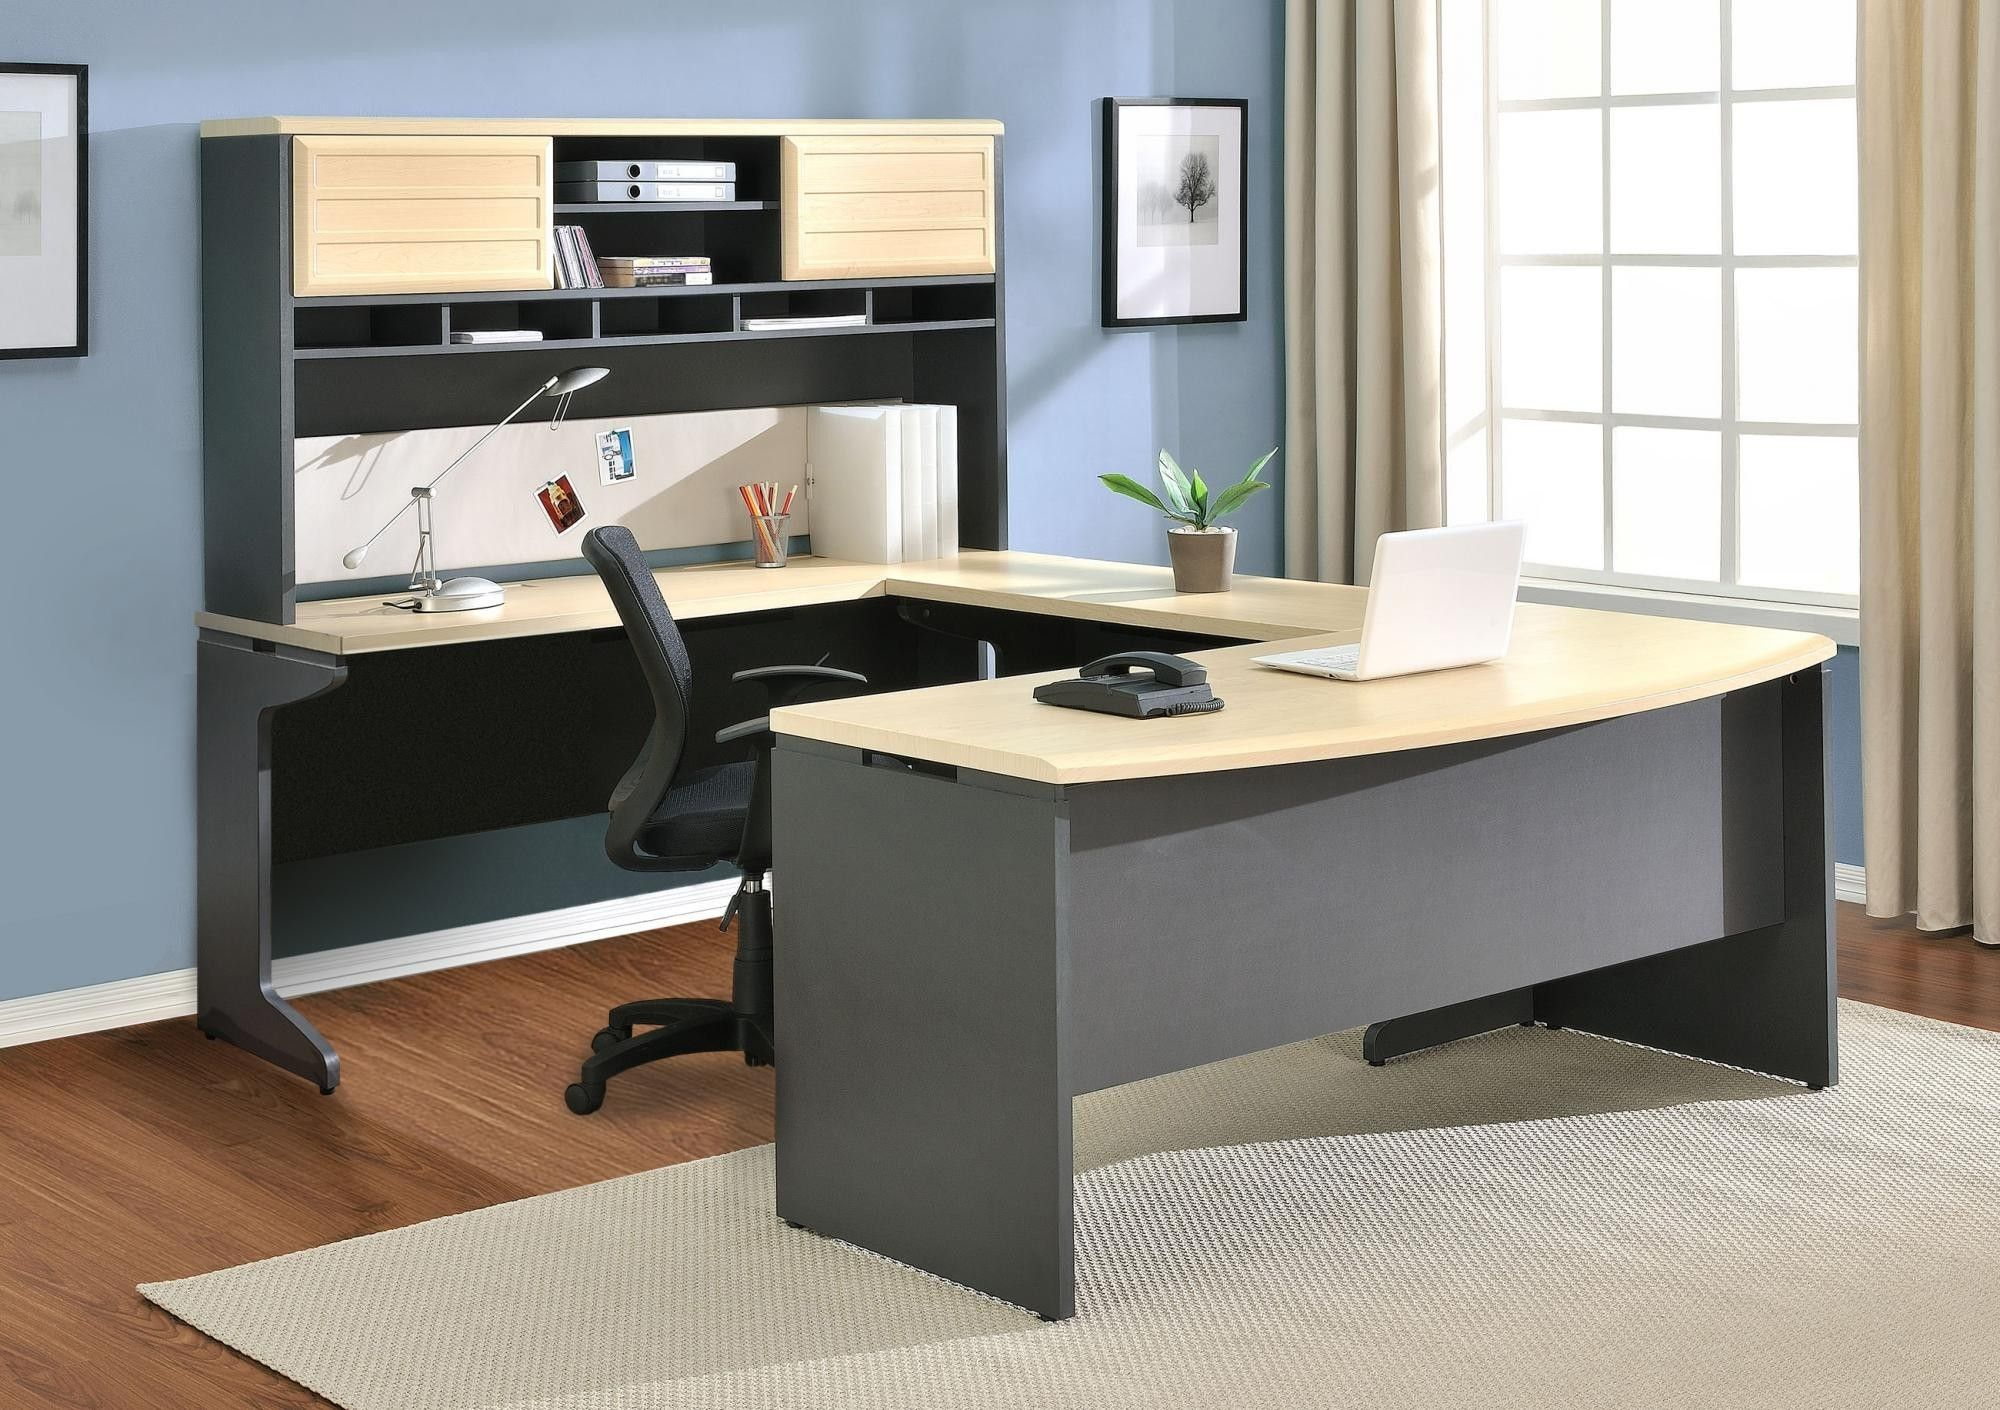 office furniture ideas decorating. Home Office : Workstation Family Ideas Decorating Offices Small Space Desks Design 133 Furniture